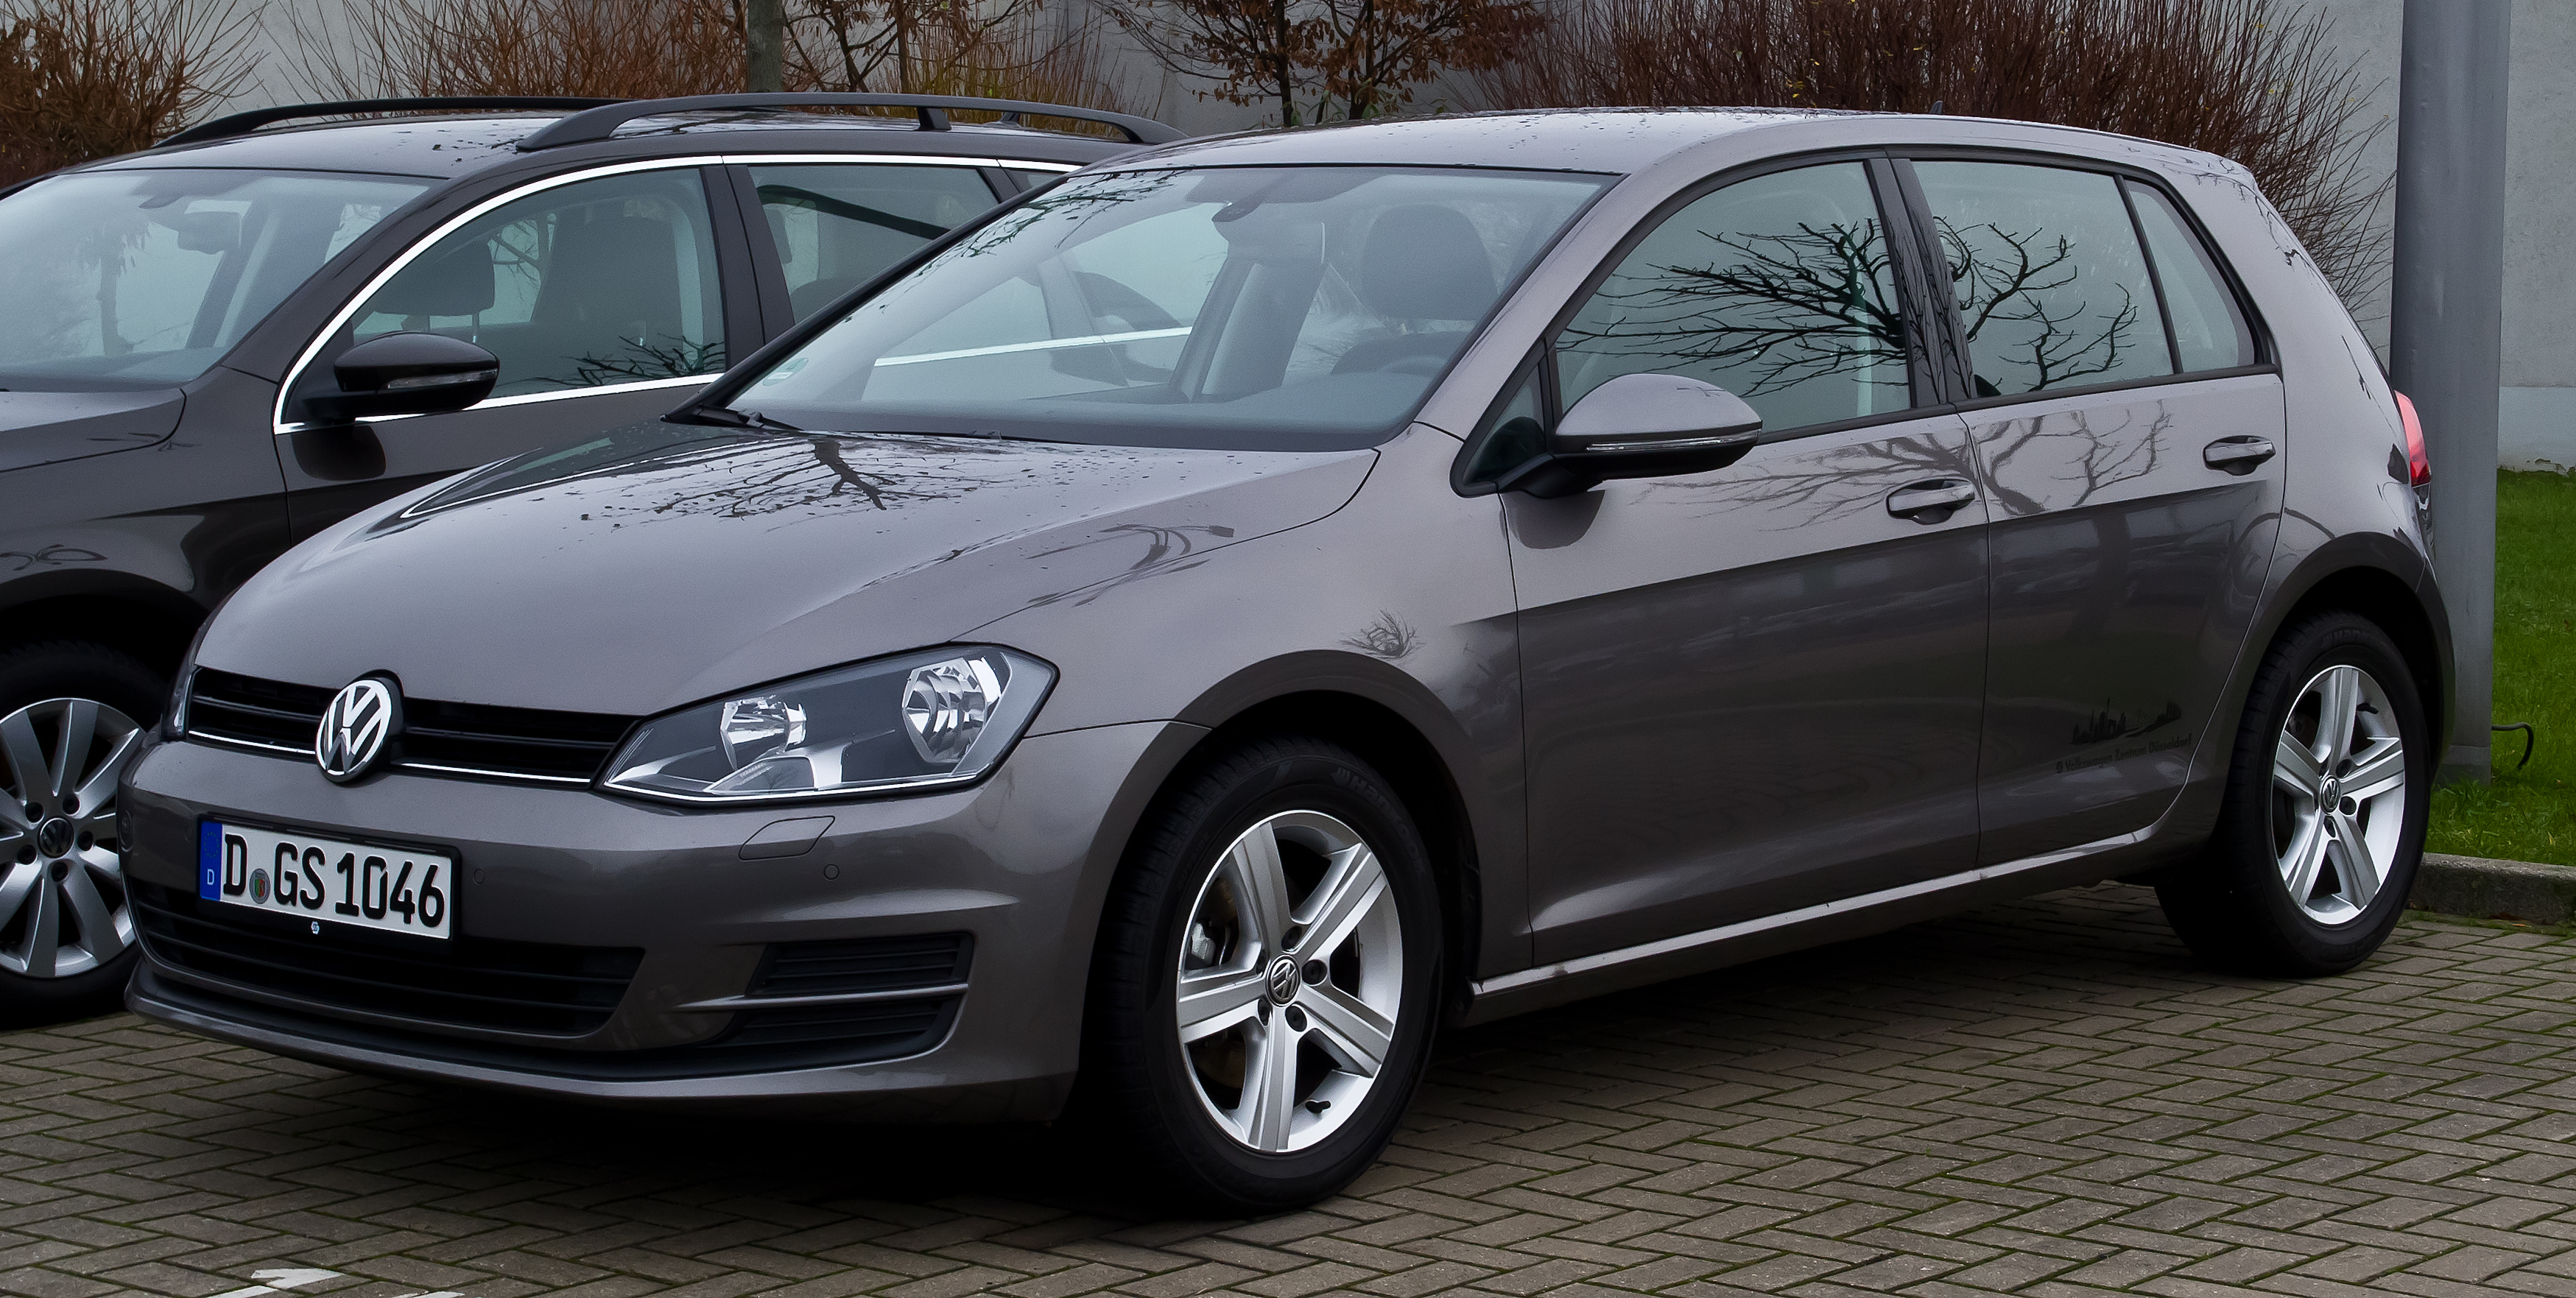 Volkswagen Golf 1.2 2014 photo - 1